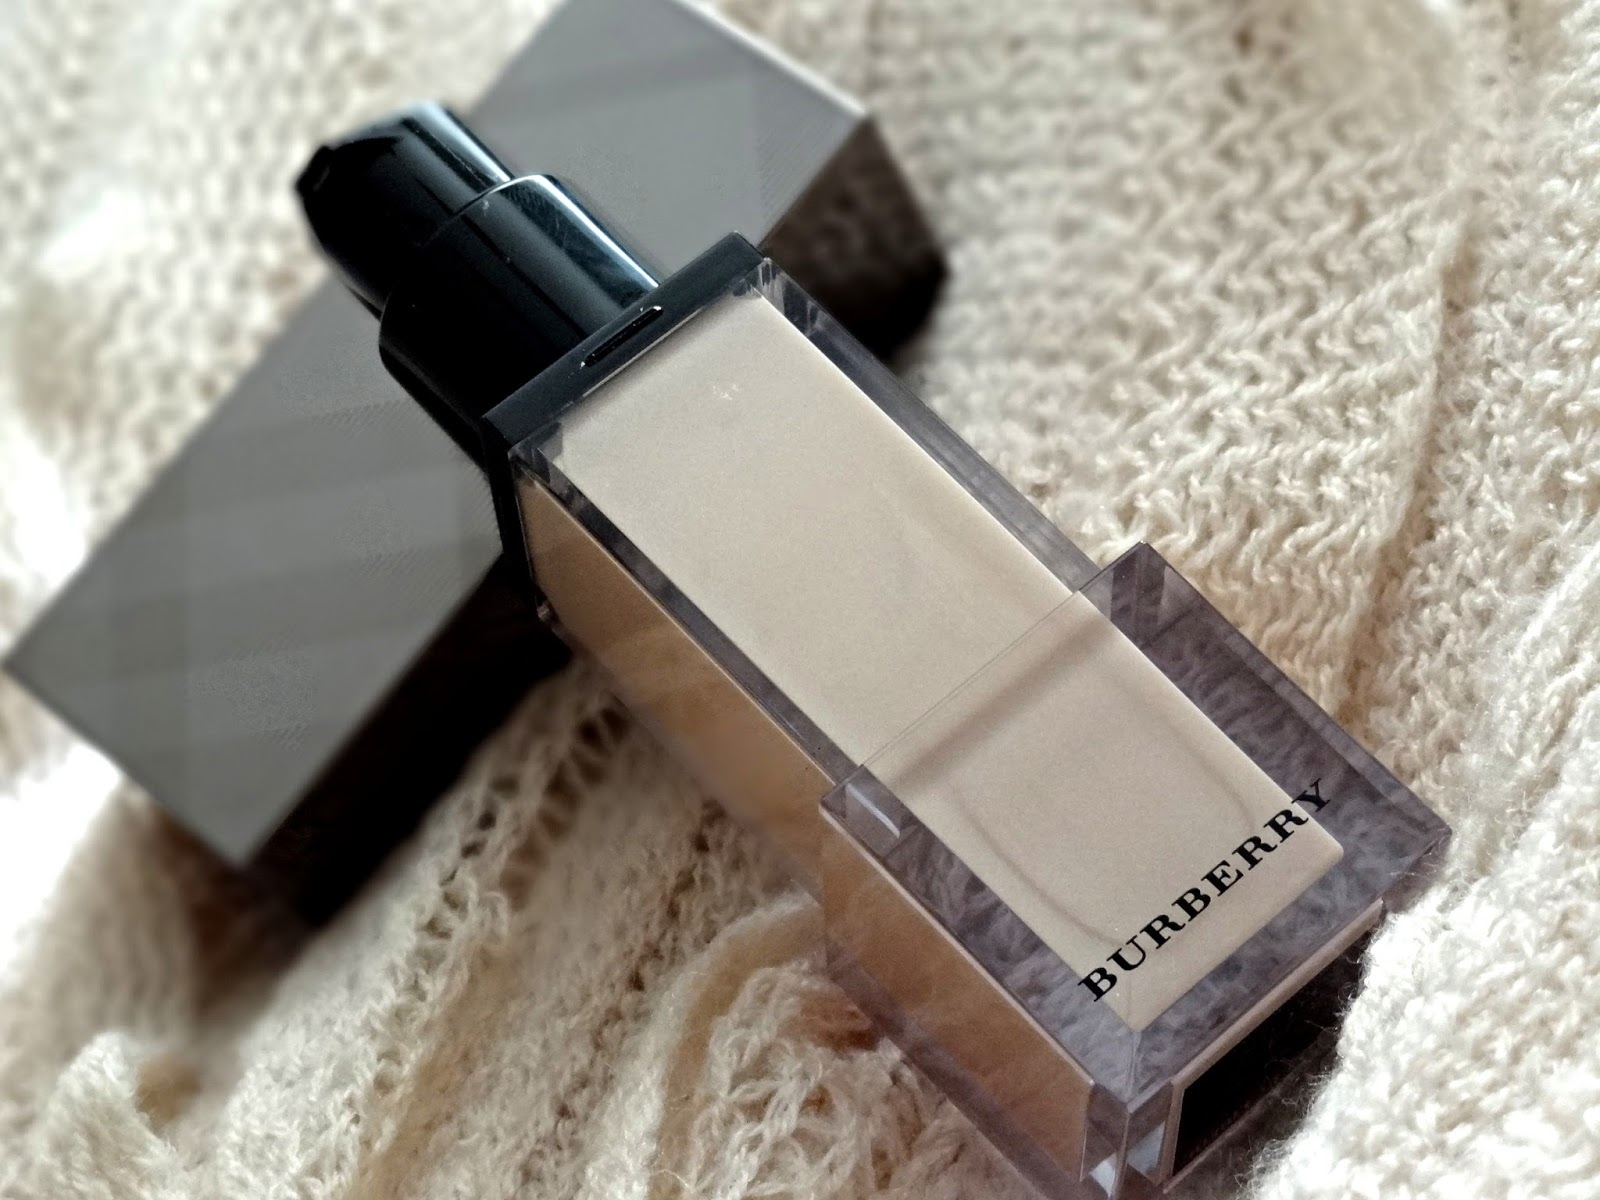 Burberry Fresh Glow Luminous Fluid Base in Nude Radiance